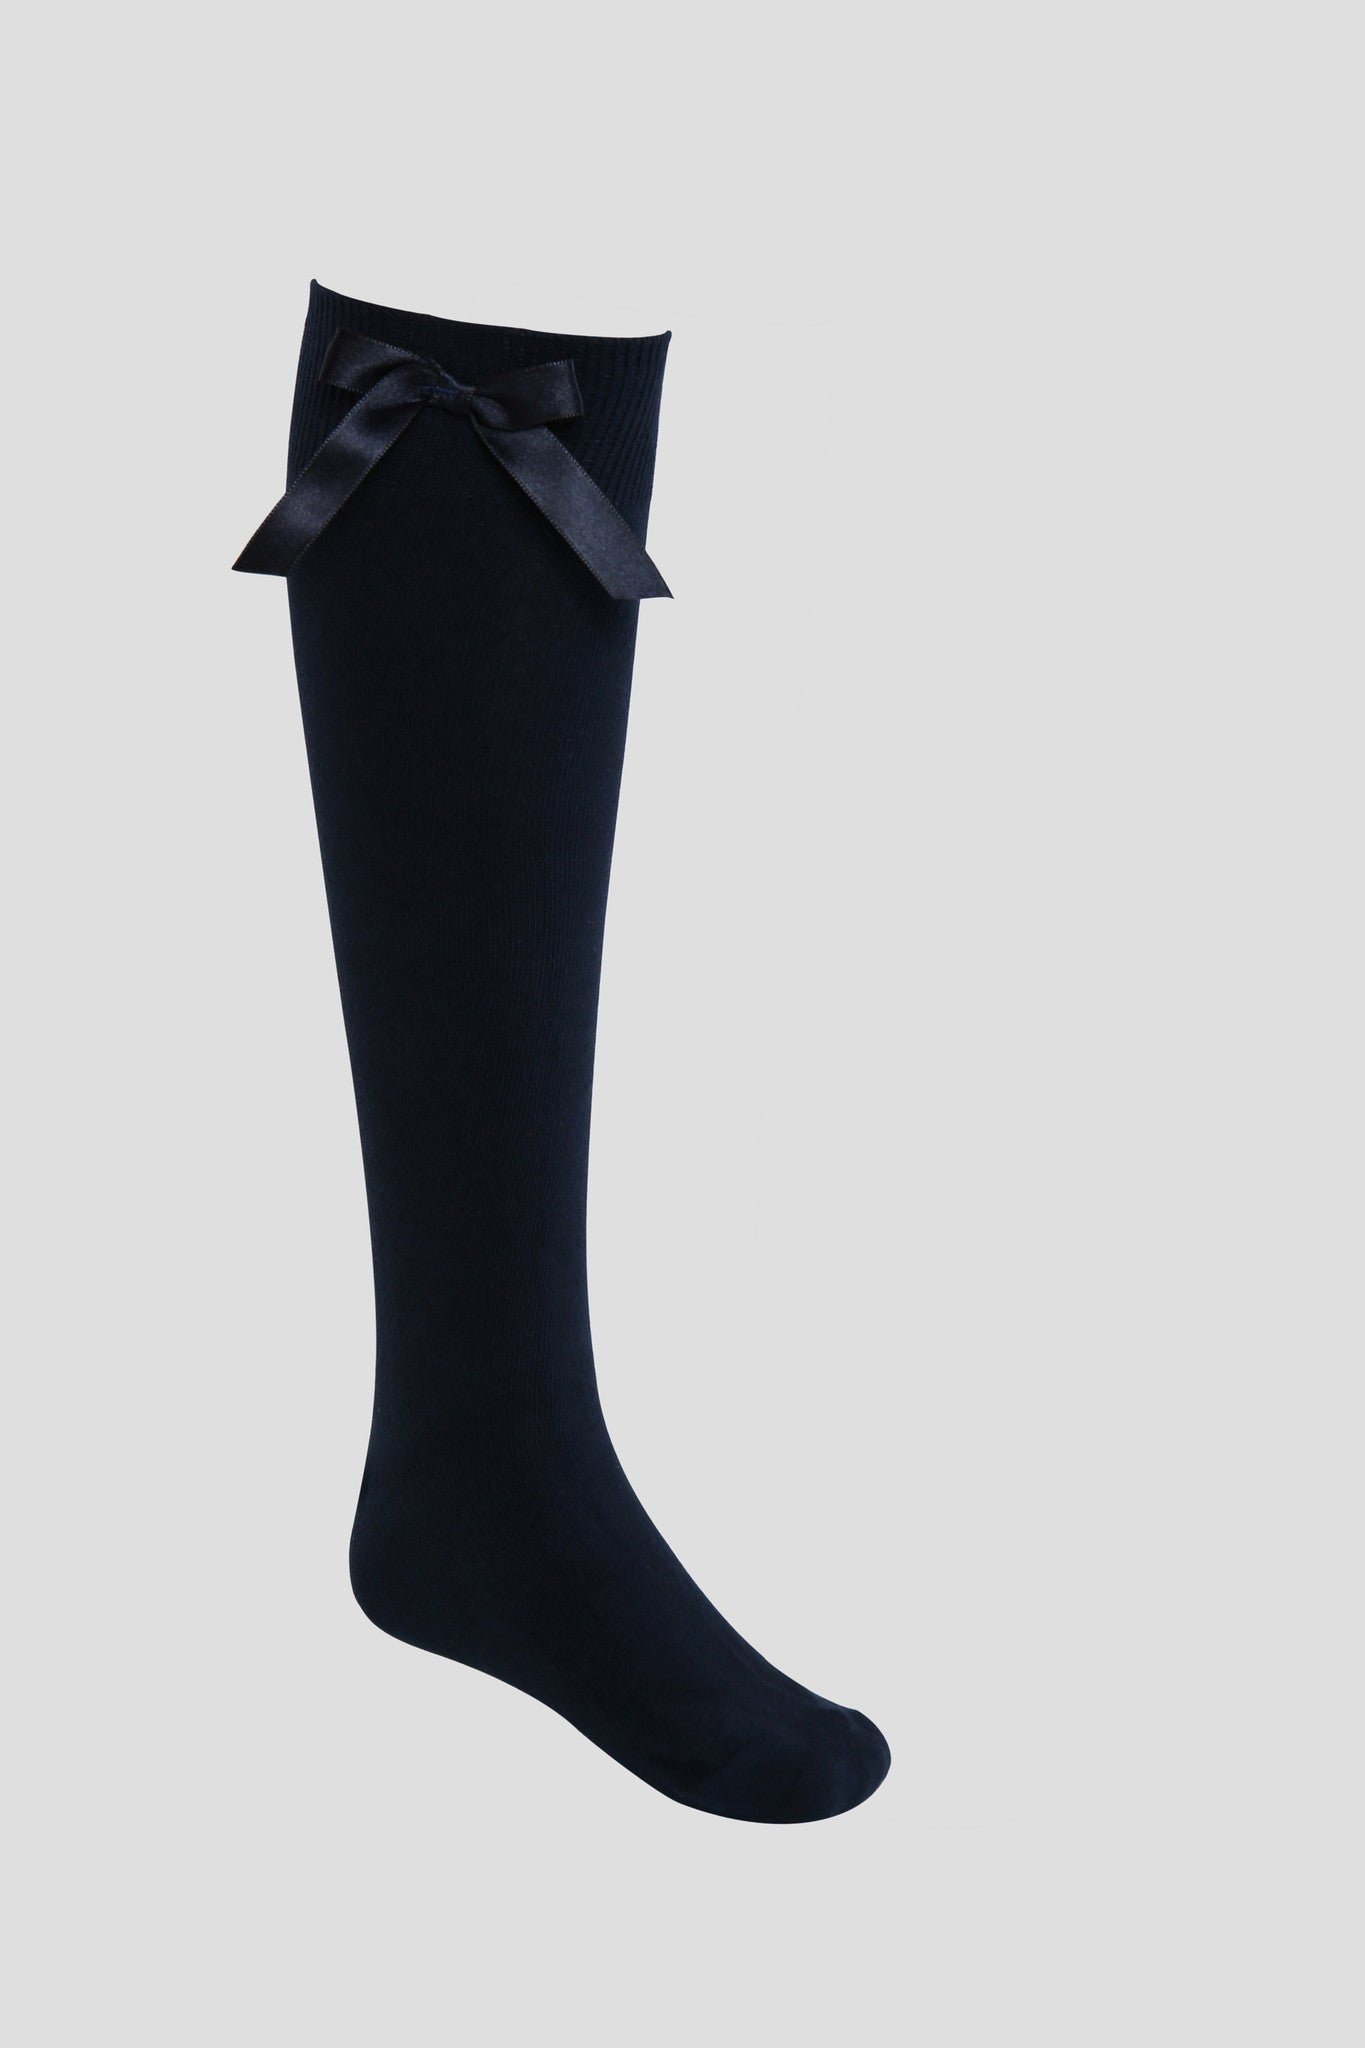 cb9361aefa8 Girls knee-high school socks with bow detail - Quality school uniforms at  the School Clothing Company